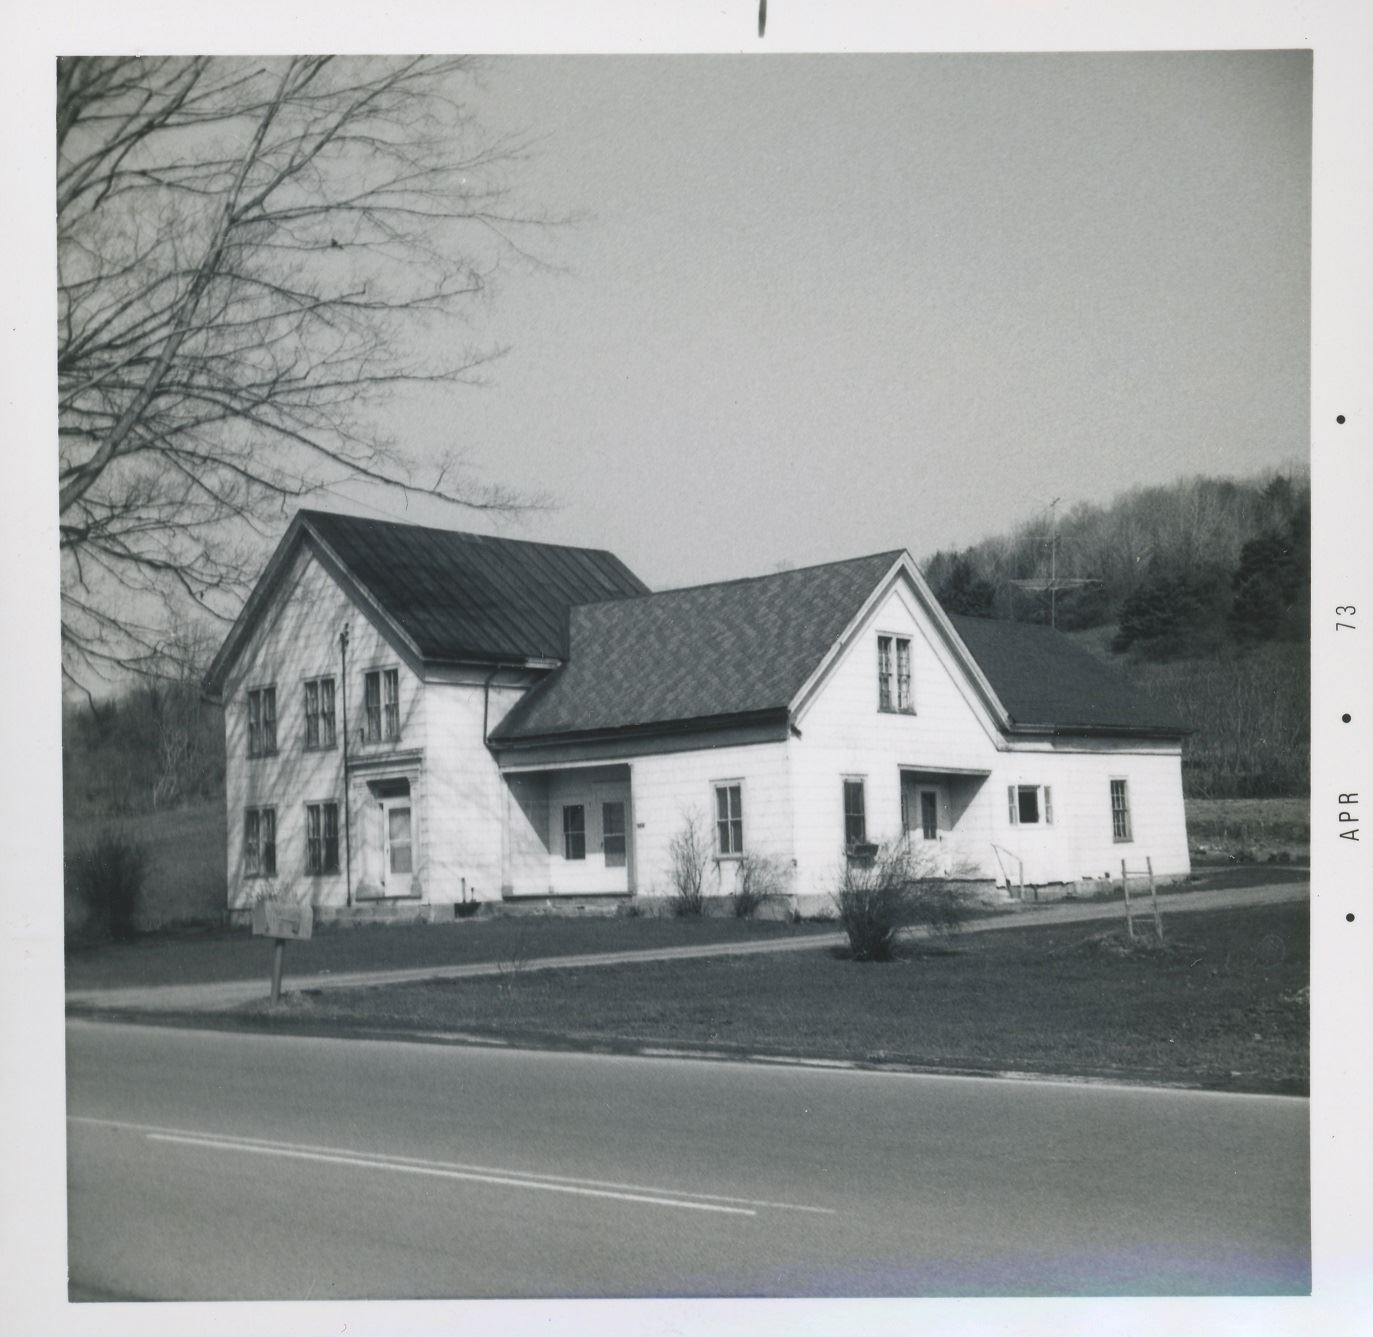 Route 20 west of Bouckville north side house 20 April 73